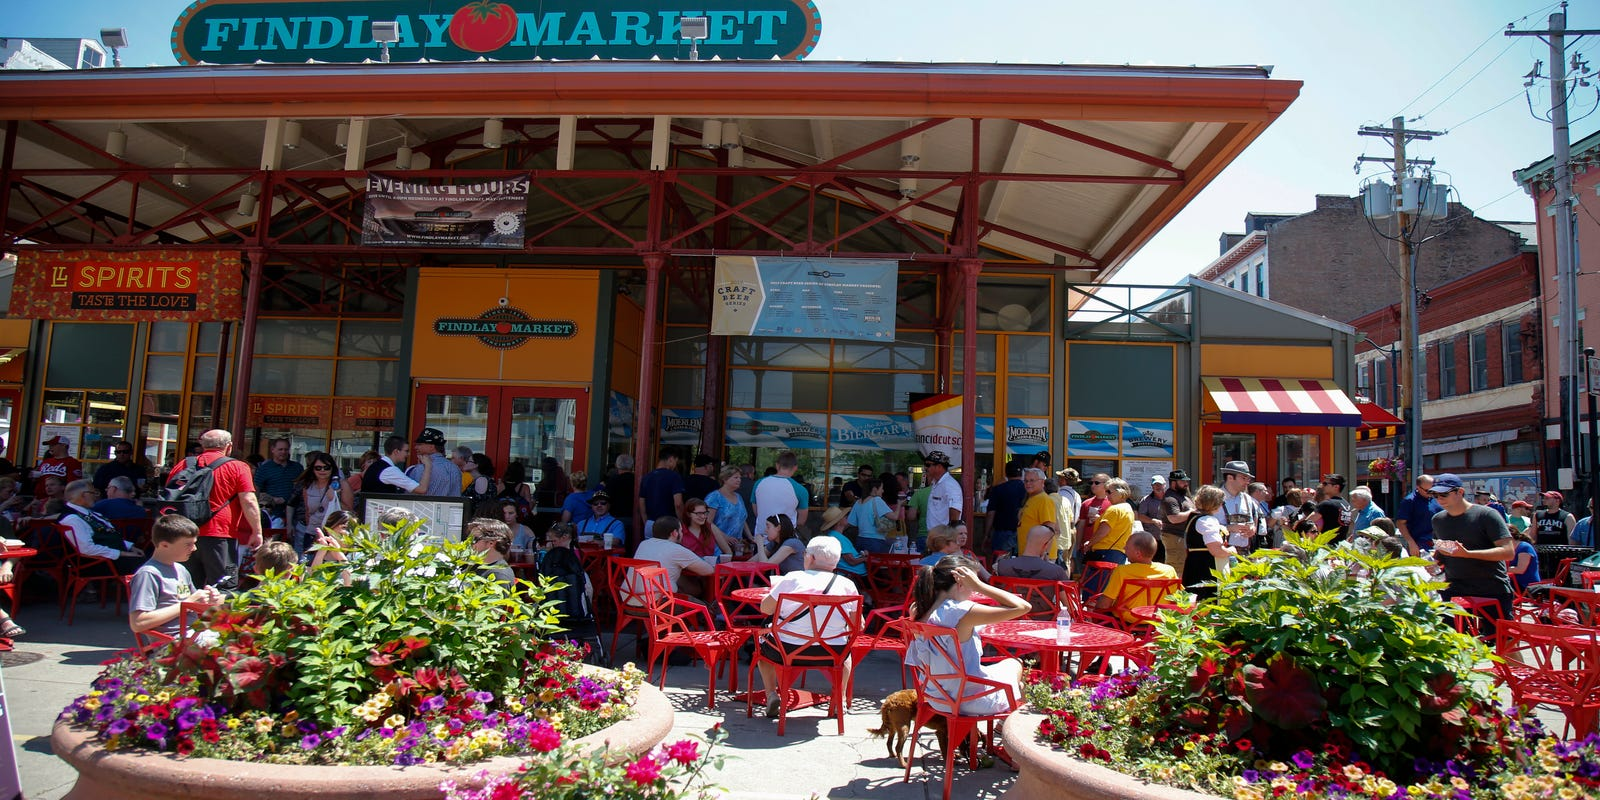 Newsweek names Cincinnati, Ohio's Findlay Market as one of the world's best food markets